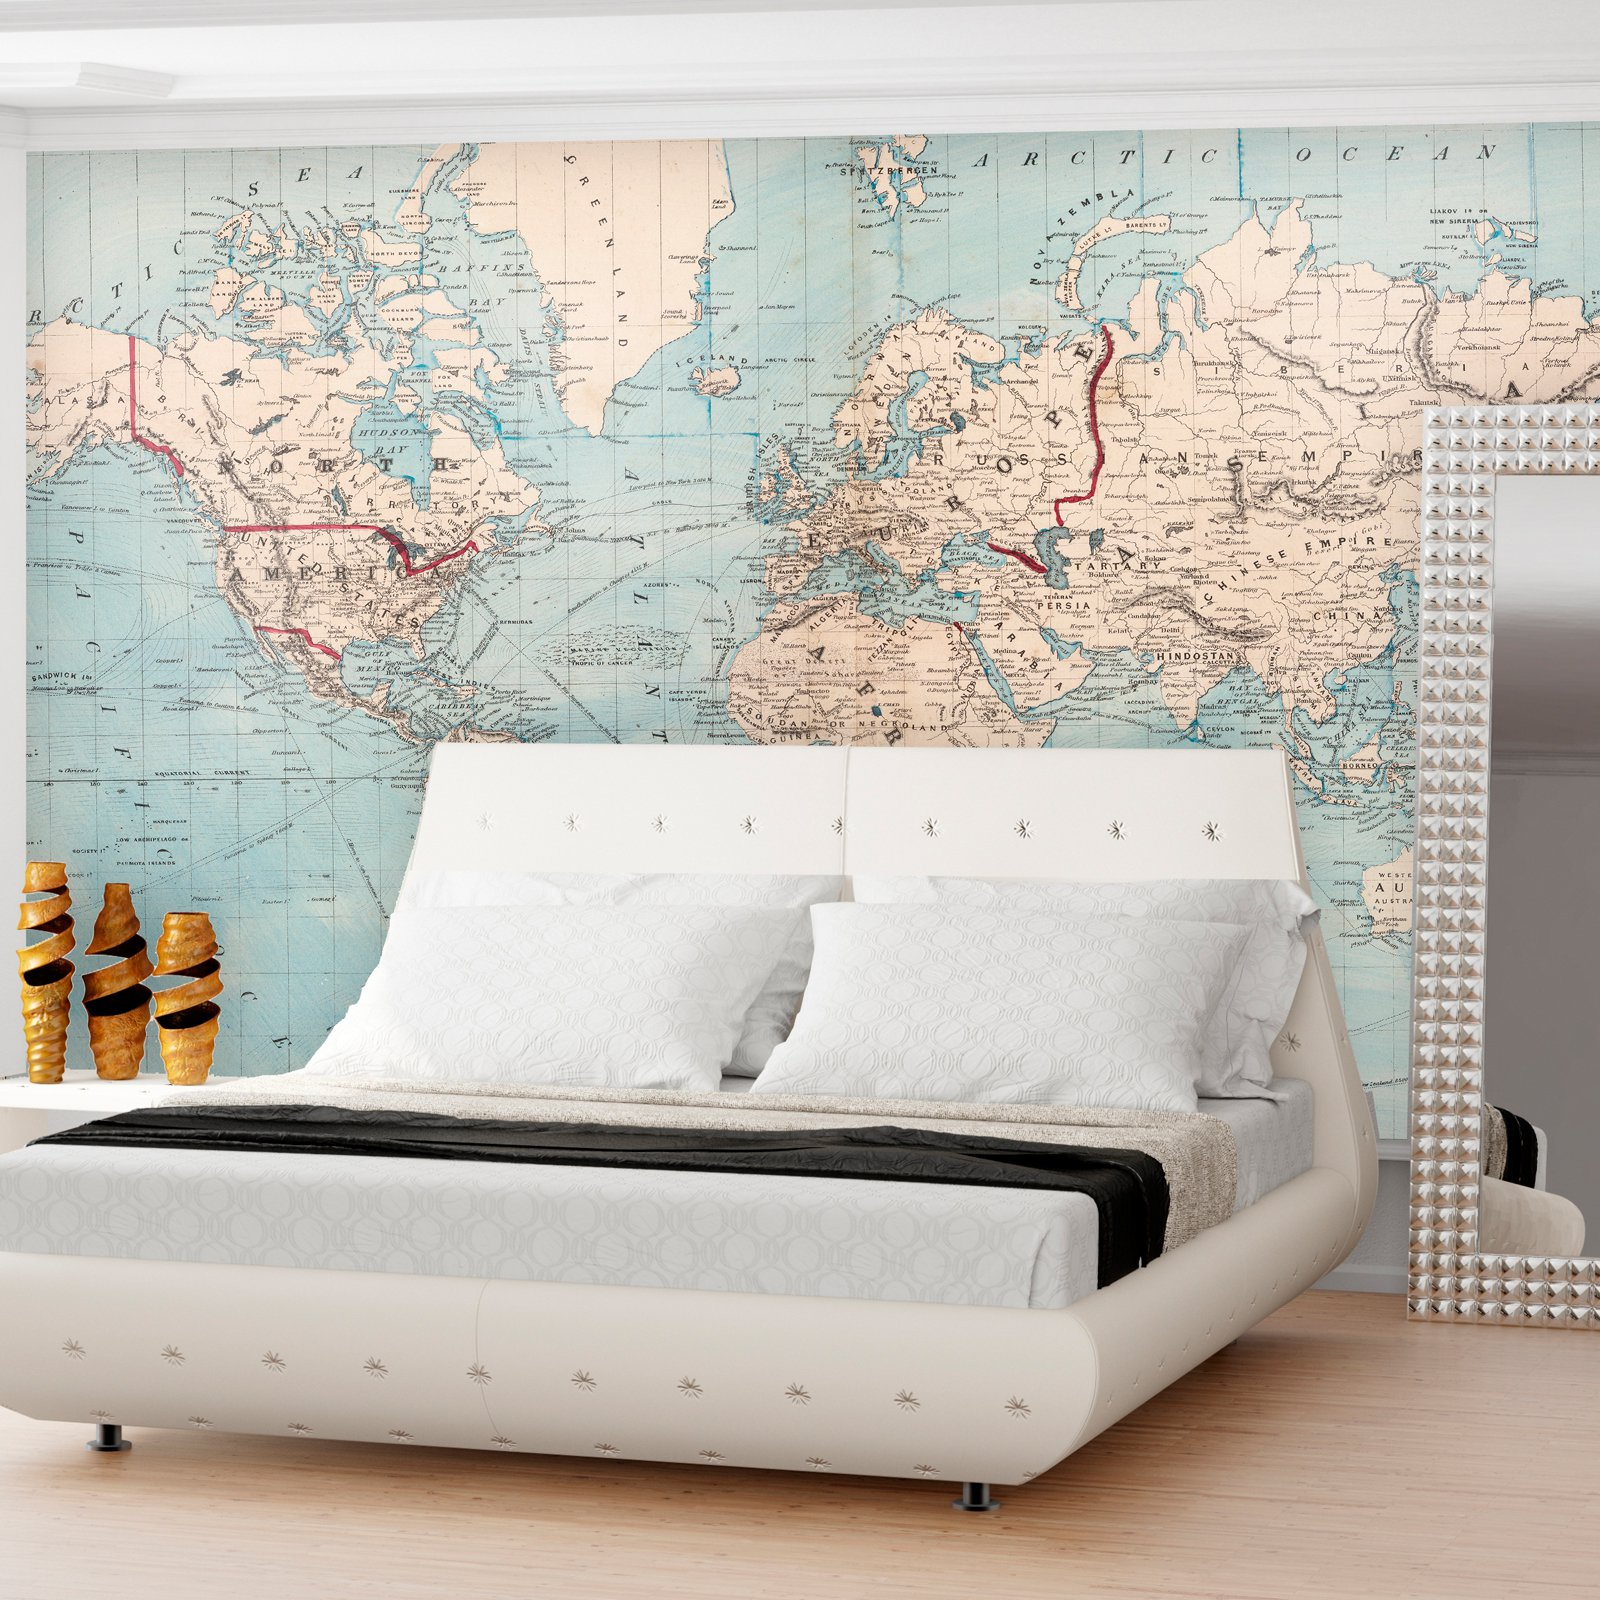 Swag paper world map 1876 shipping routes self adhesive wallpaper swag paper world map 1876 shipping routes self adhesive wallpaper walmart gumiabroncs Choice Image